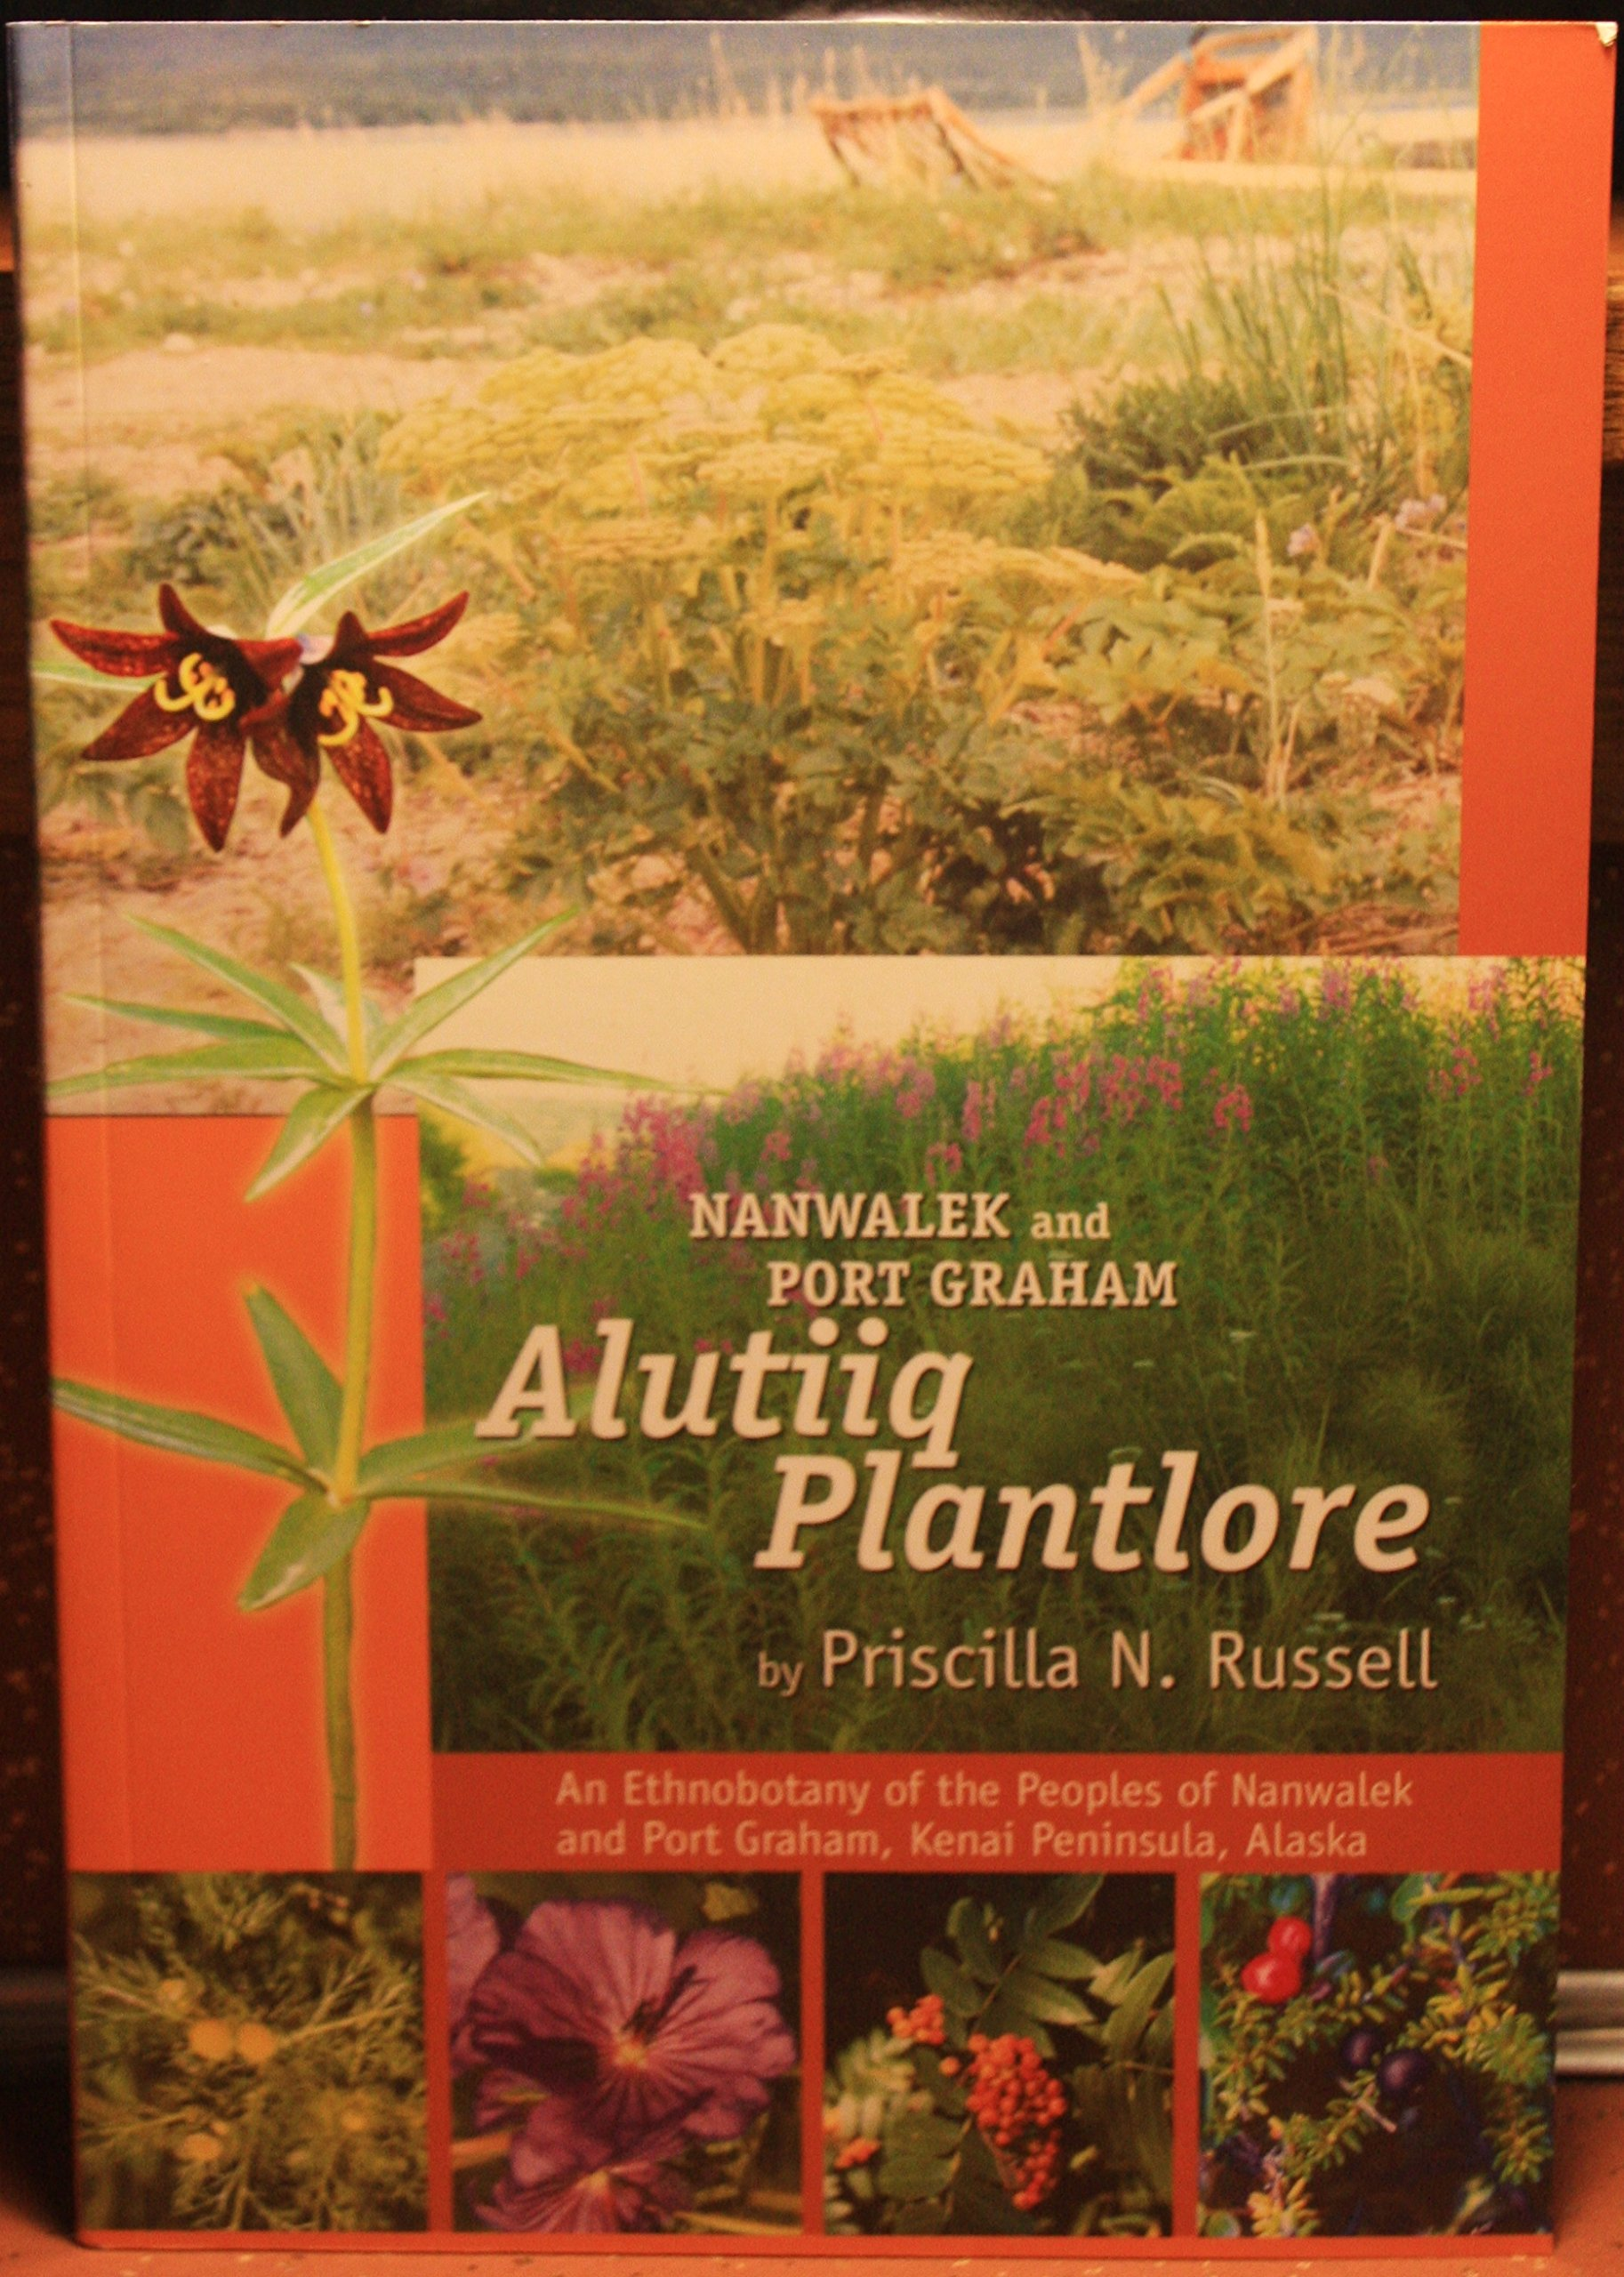 Alutiiq Plantlore : An Ethnobotany of the Peoples of Nanwalek and Port Graham, Kenai Peninsula, Alaska pdf